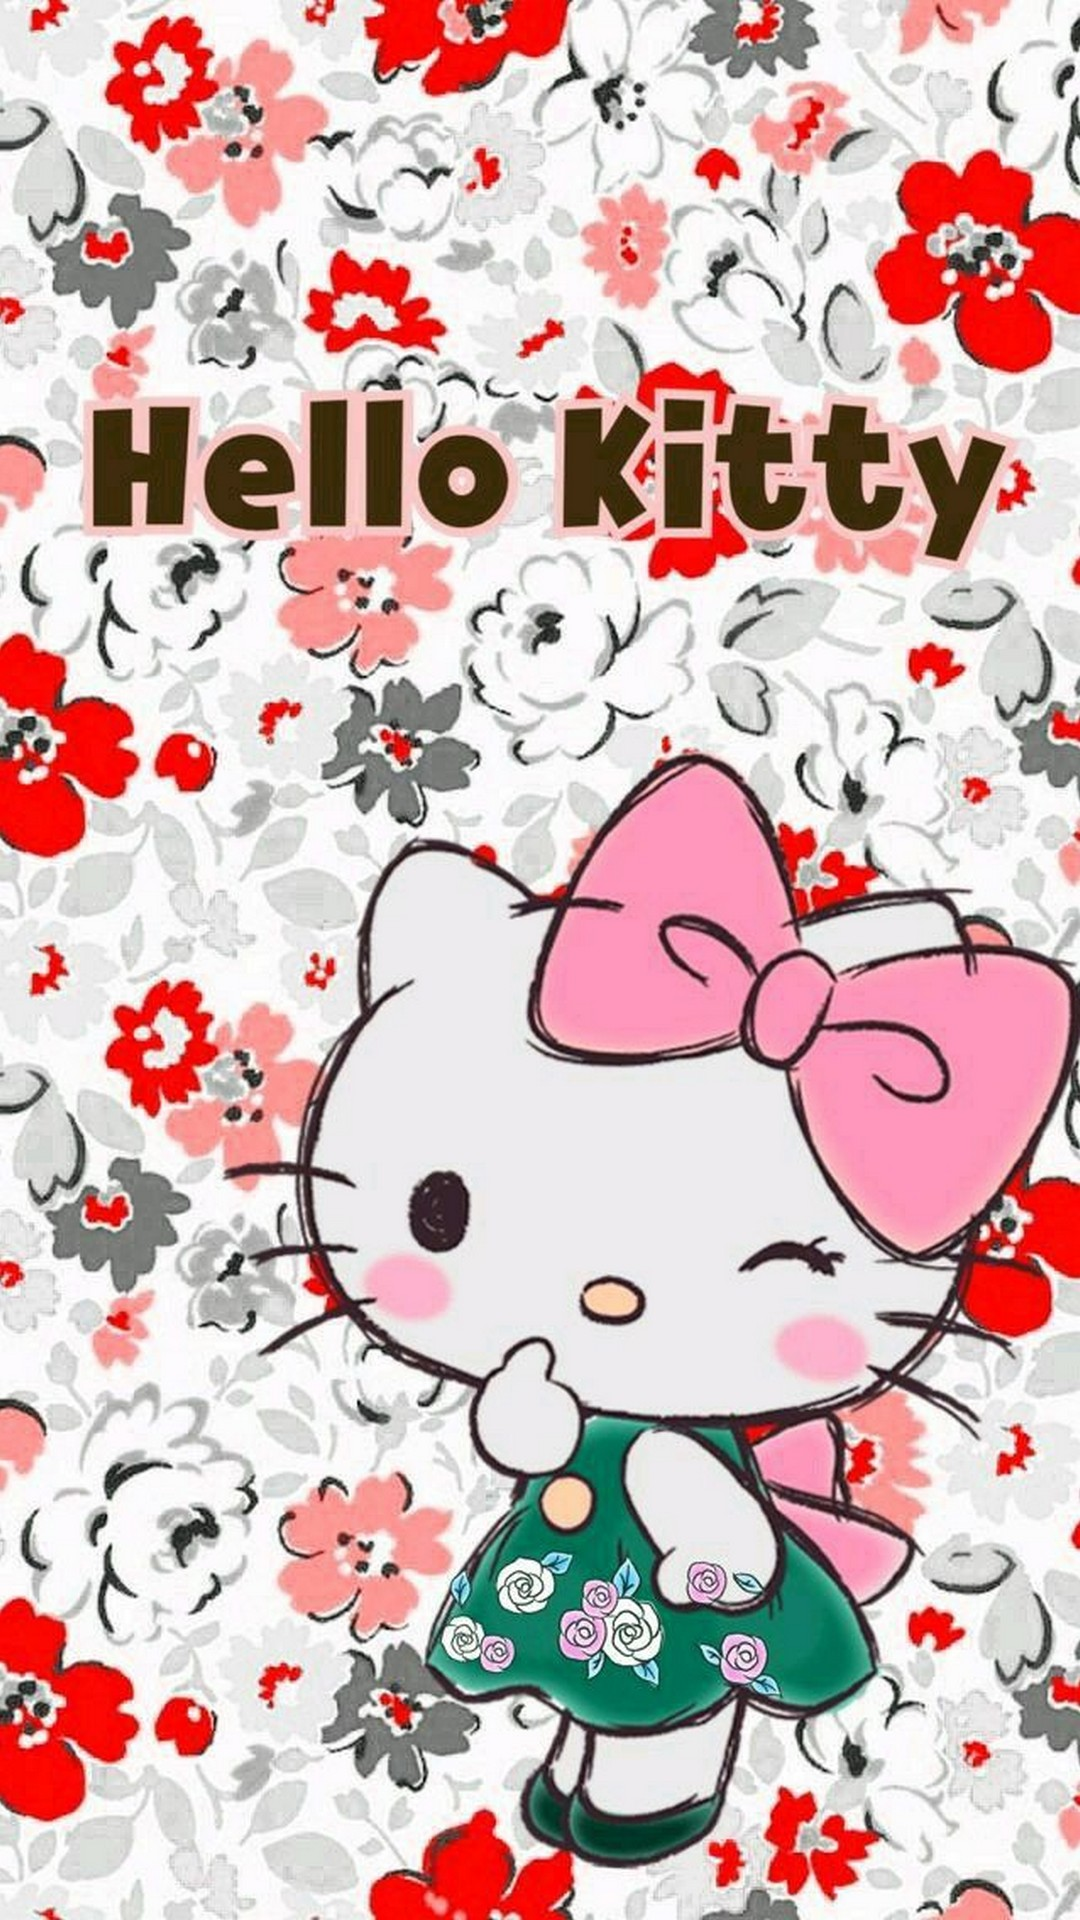 Galleries Hello Kitty   Hello Kitty 239673   HD Wallpaper Download 640x1136